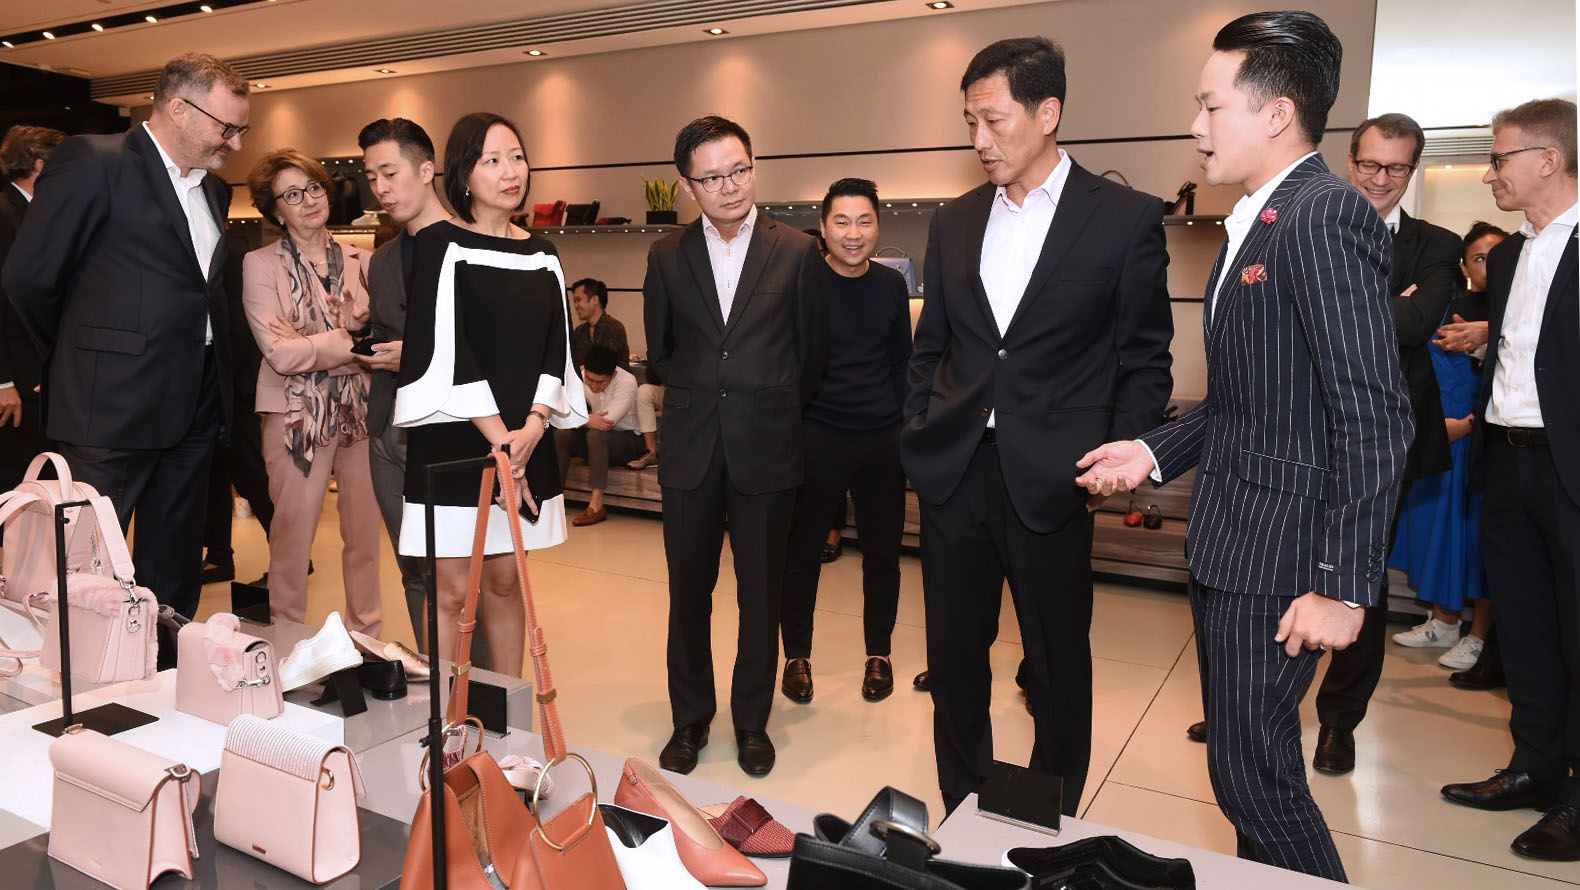 (from right) Fashion coach Nigel Seow from CHARLES & KEITH GROUP demonstrating to Minister Ong how in-house training translates to looks and trends for Charles and Keith Group's fashion stylists, while PCEO Ms Jeanne Liew and SkillsFuture Singapore chief executive Mr Ng Cher Pong look on.